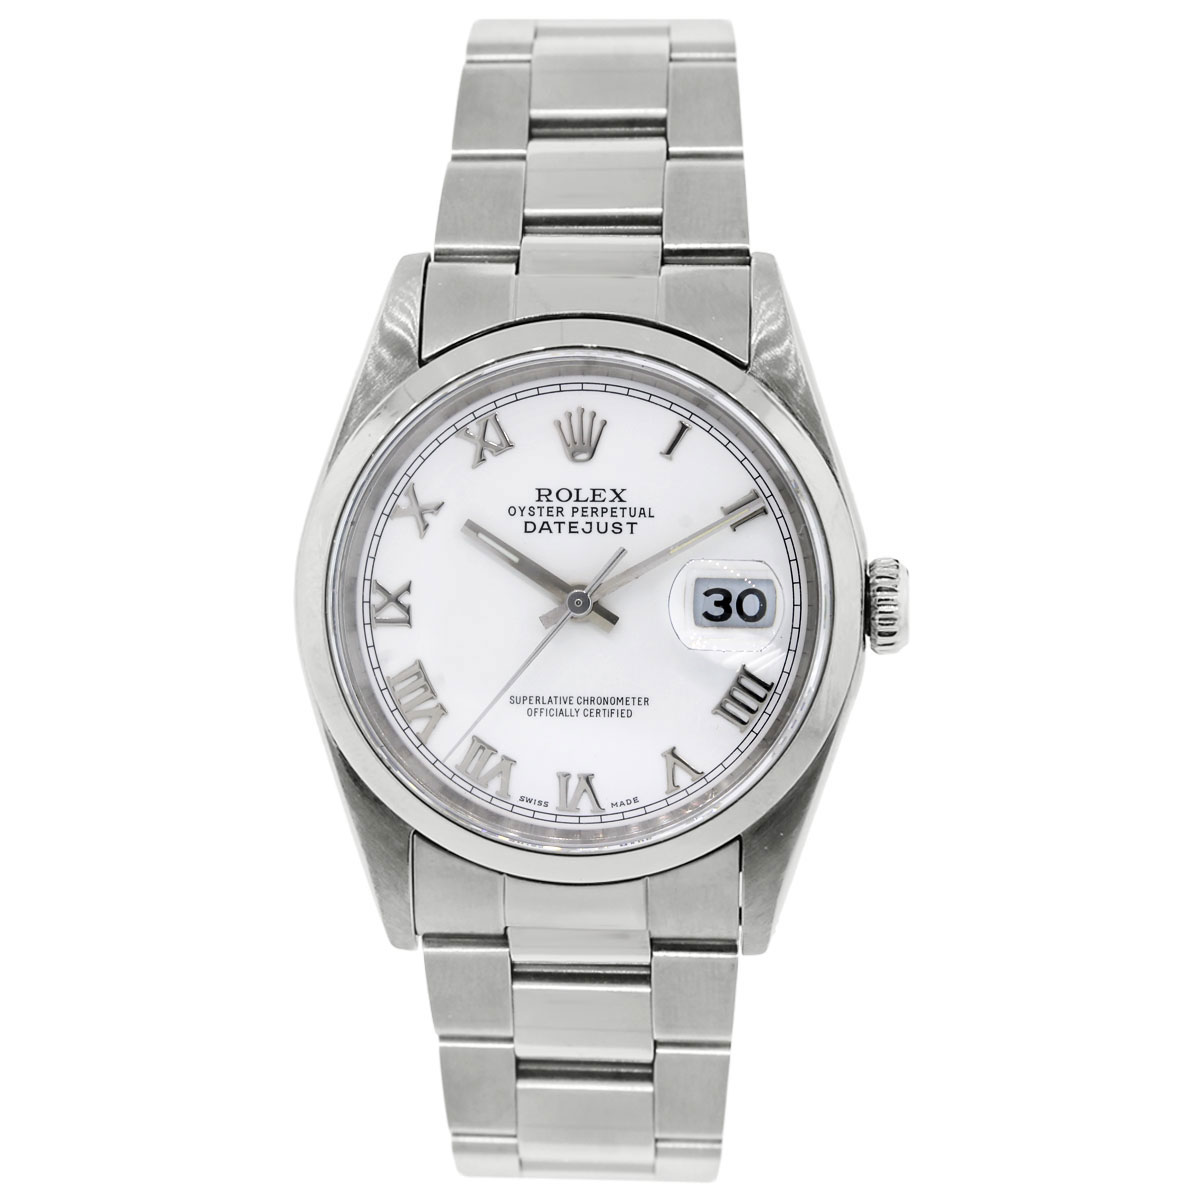 Rolex 16200 Datejust White Dial smooth bezel